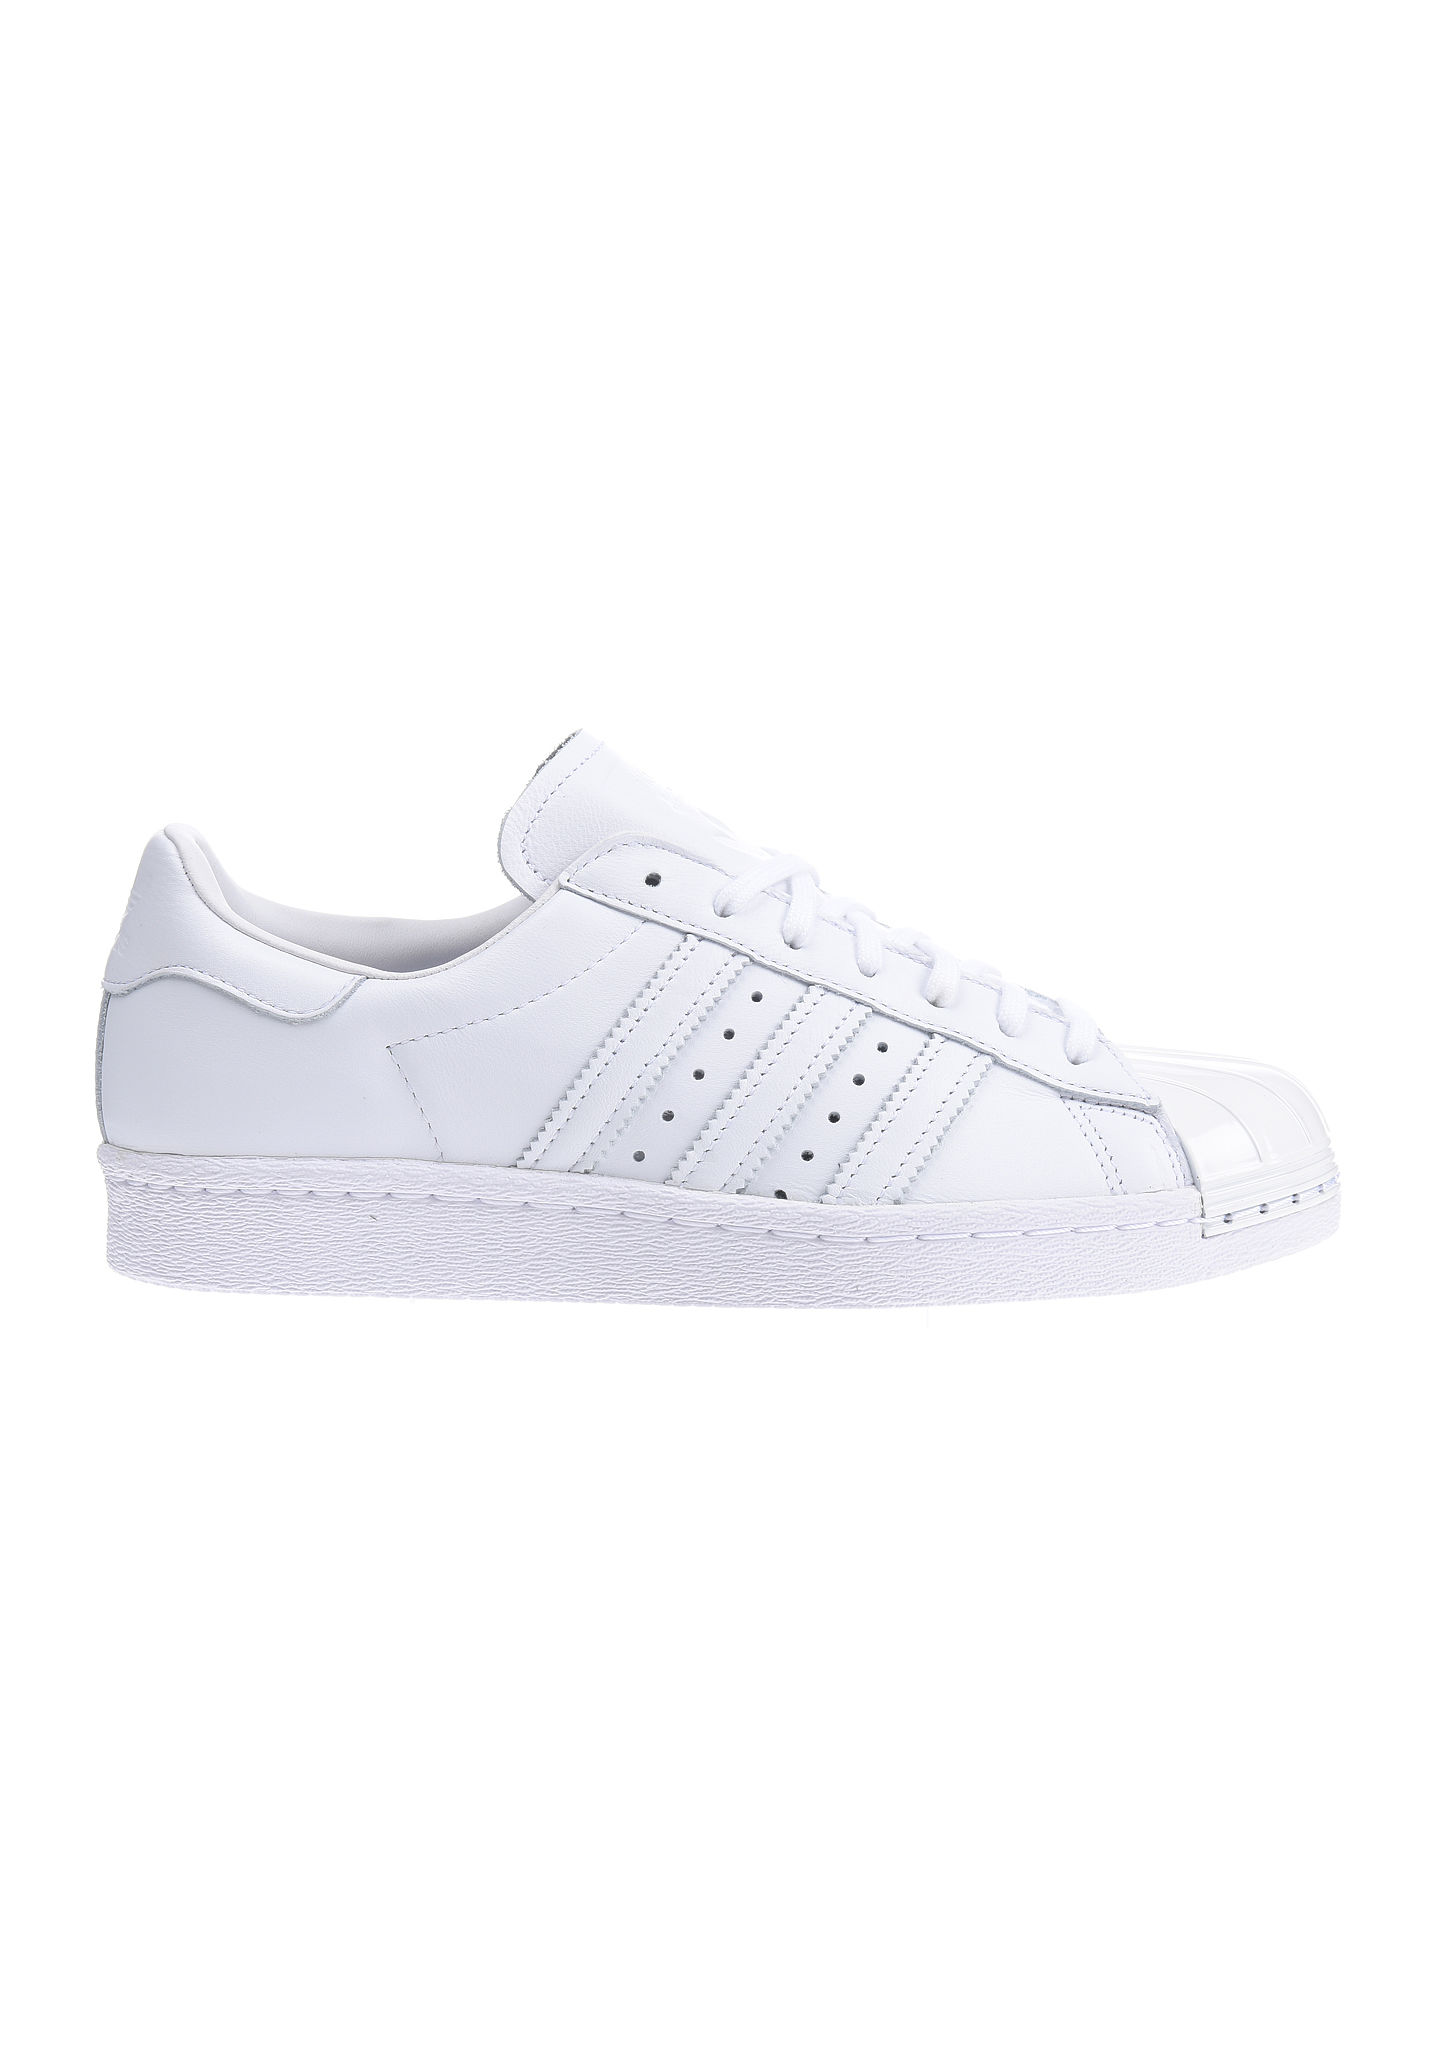 new arrival 2c995 a96f2 ADIDAS ORIGINALS Superstar 80S Metal Toe - Sneakers for Women - White -  Planet Sports